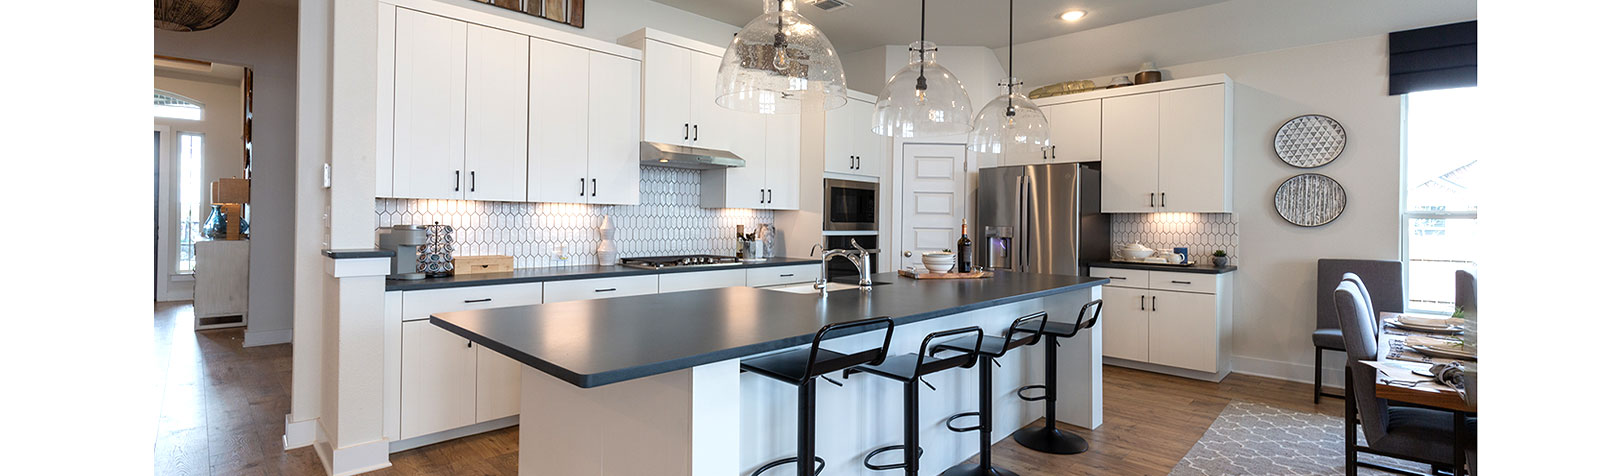 Kitchen with EVRGRN Luxe cabinets